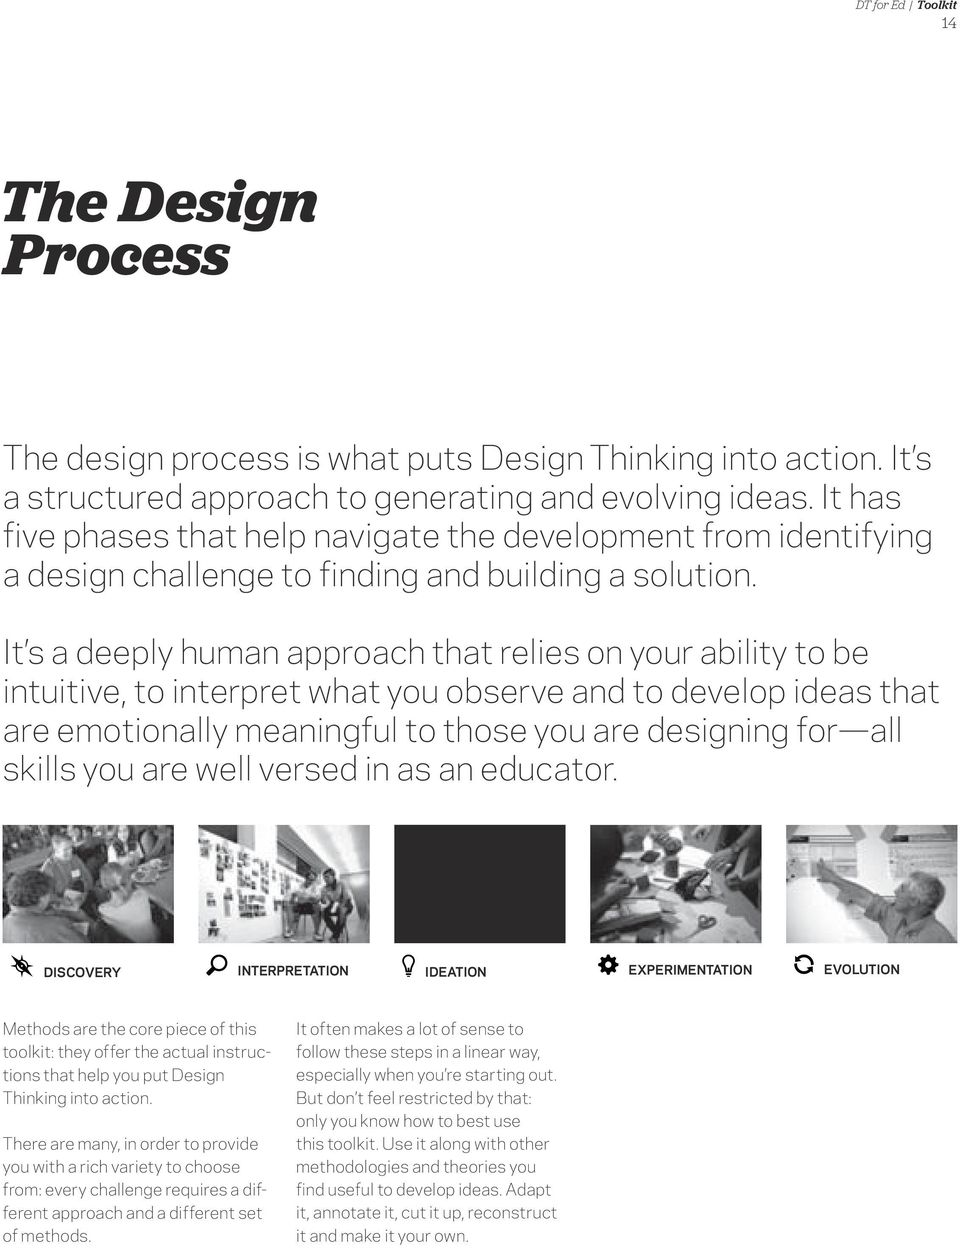 It s a deeply human approach that relies on your ability to be intuitive, to interpret what you observe and to develop ideas that are emotionally meaningful to those you are designing for all skills